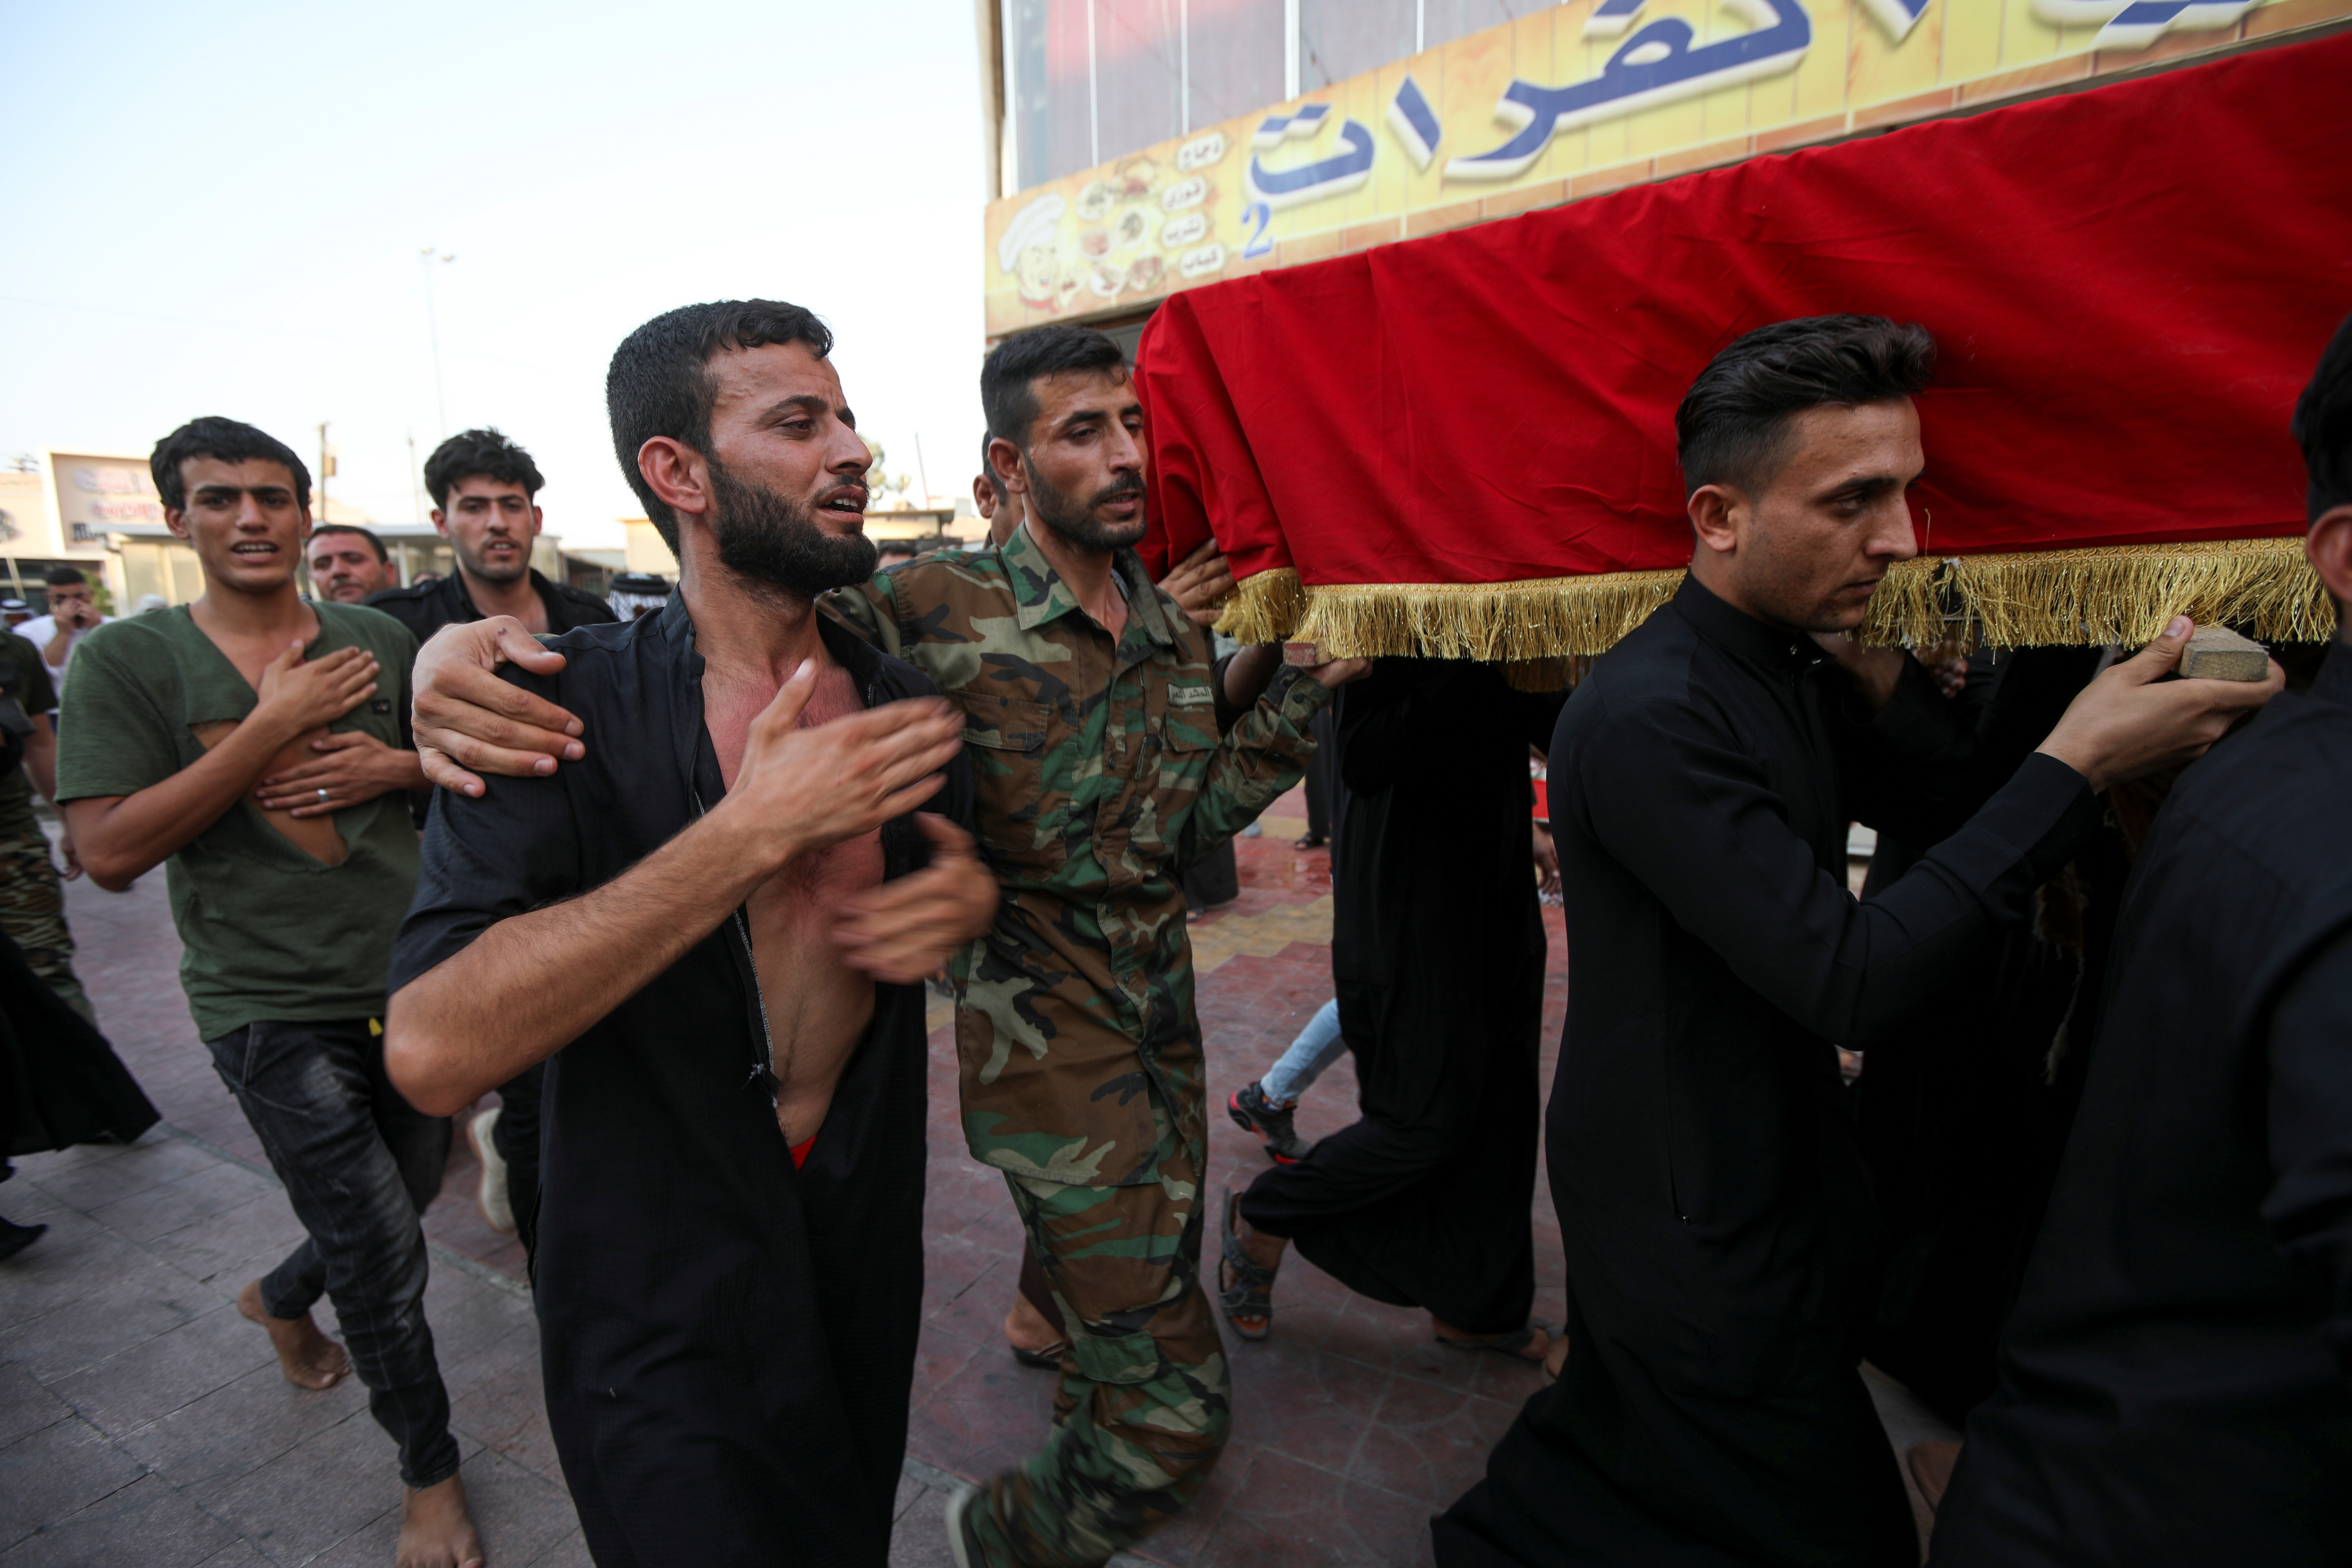 Mourners carry the coffin of a policeman, who was killed in an attack in Kirkuk, during a funeral in Najaf, Iraq, September 5, 2021. REUTERS/Alaa Al-Marjani